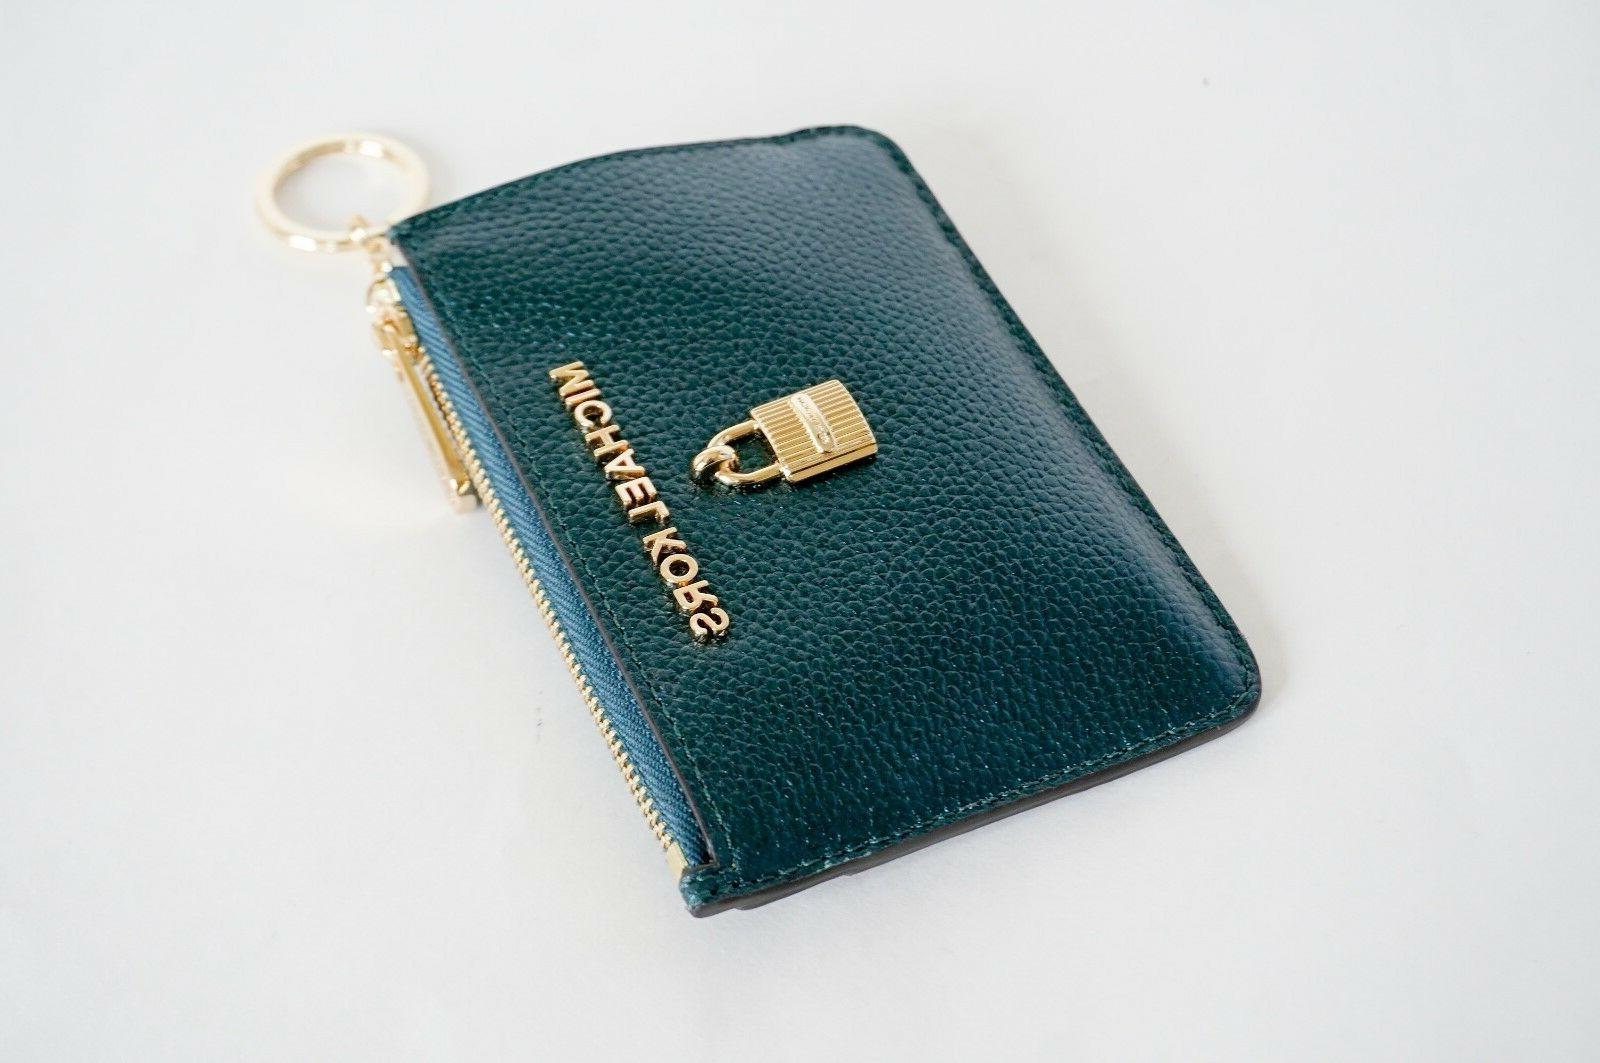 NWT KORS SMALL TOP ID KEY RING HOLDER TEAL